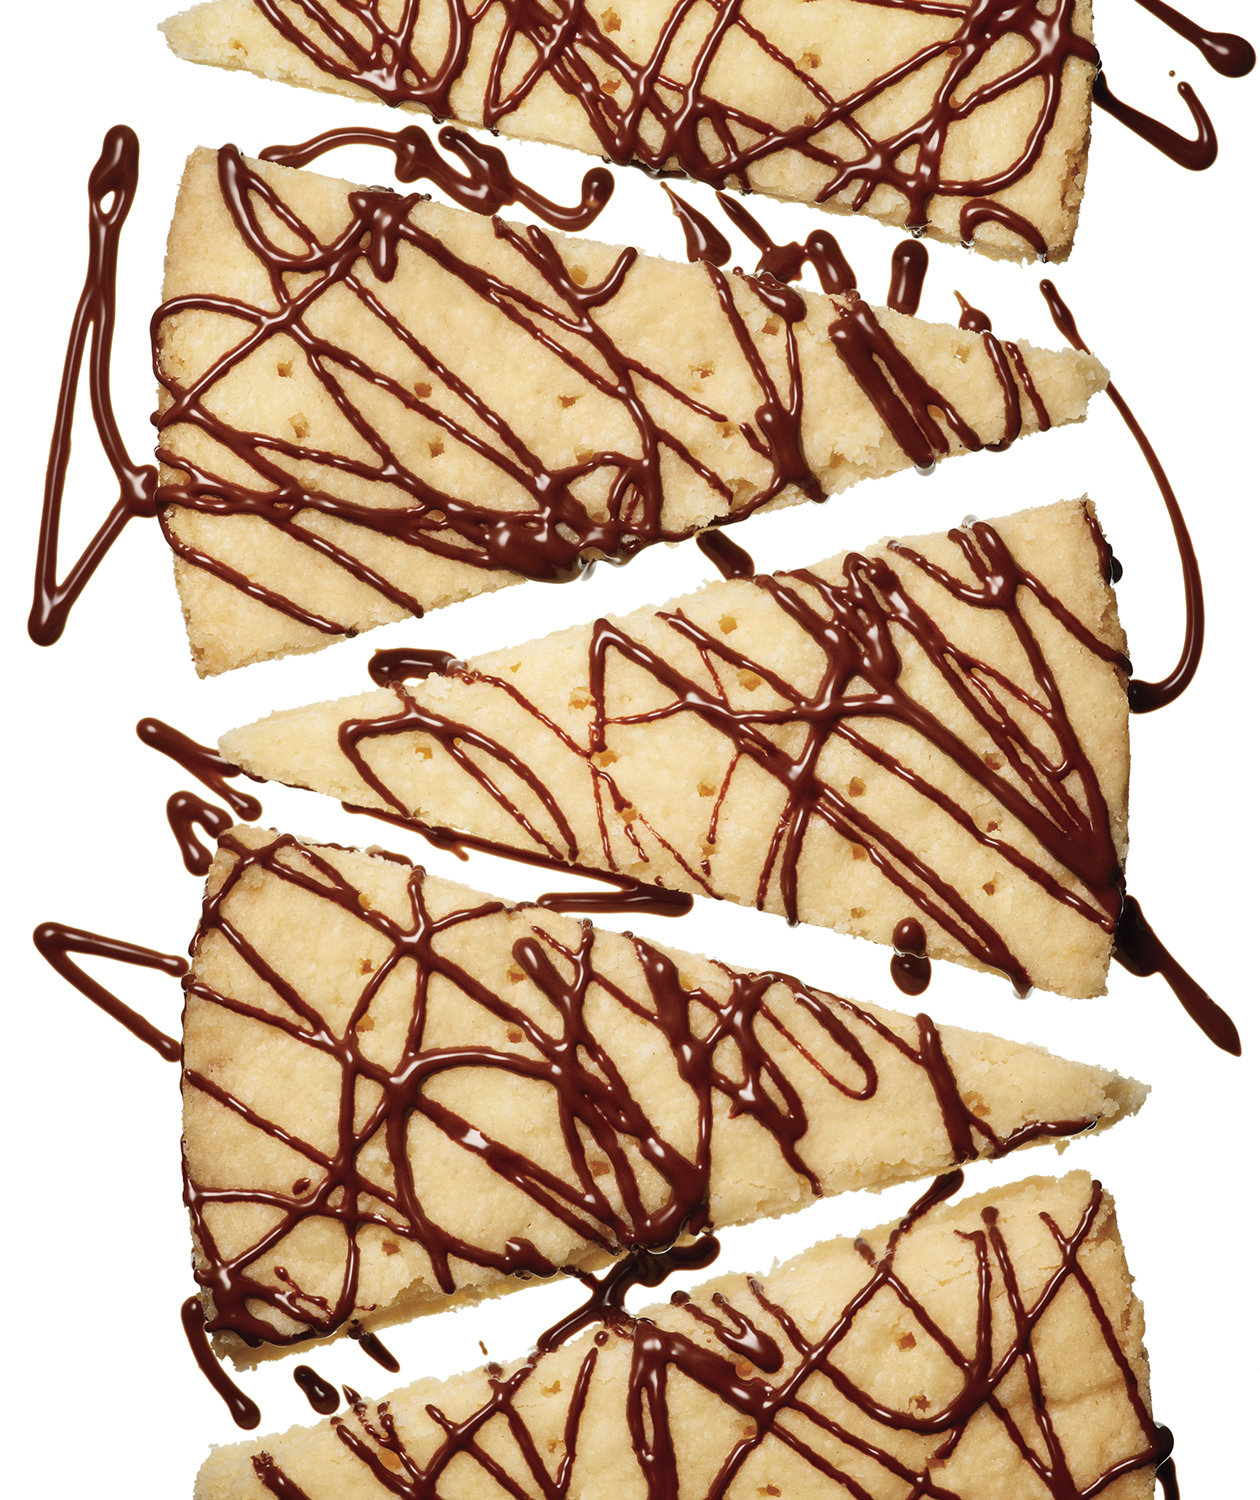 chocolate-drizzled-shortbread